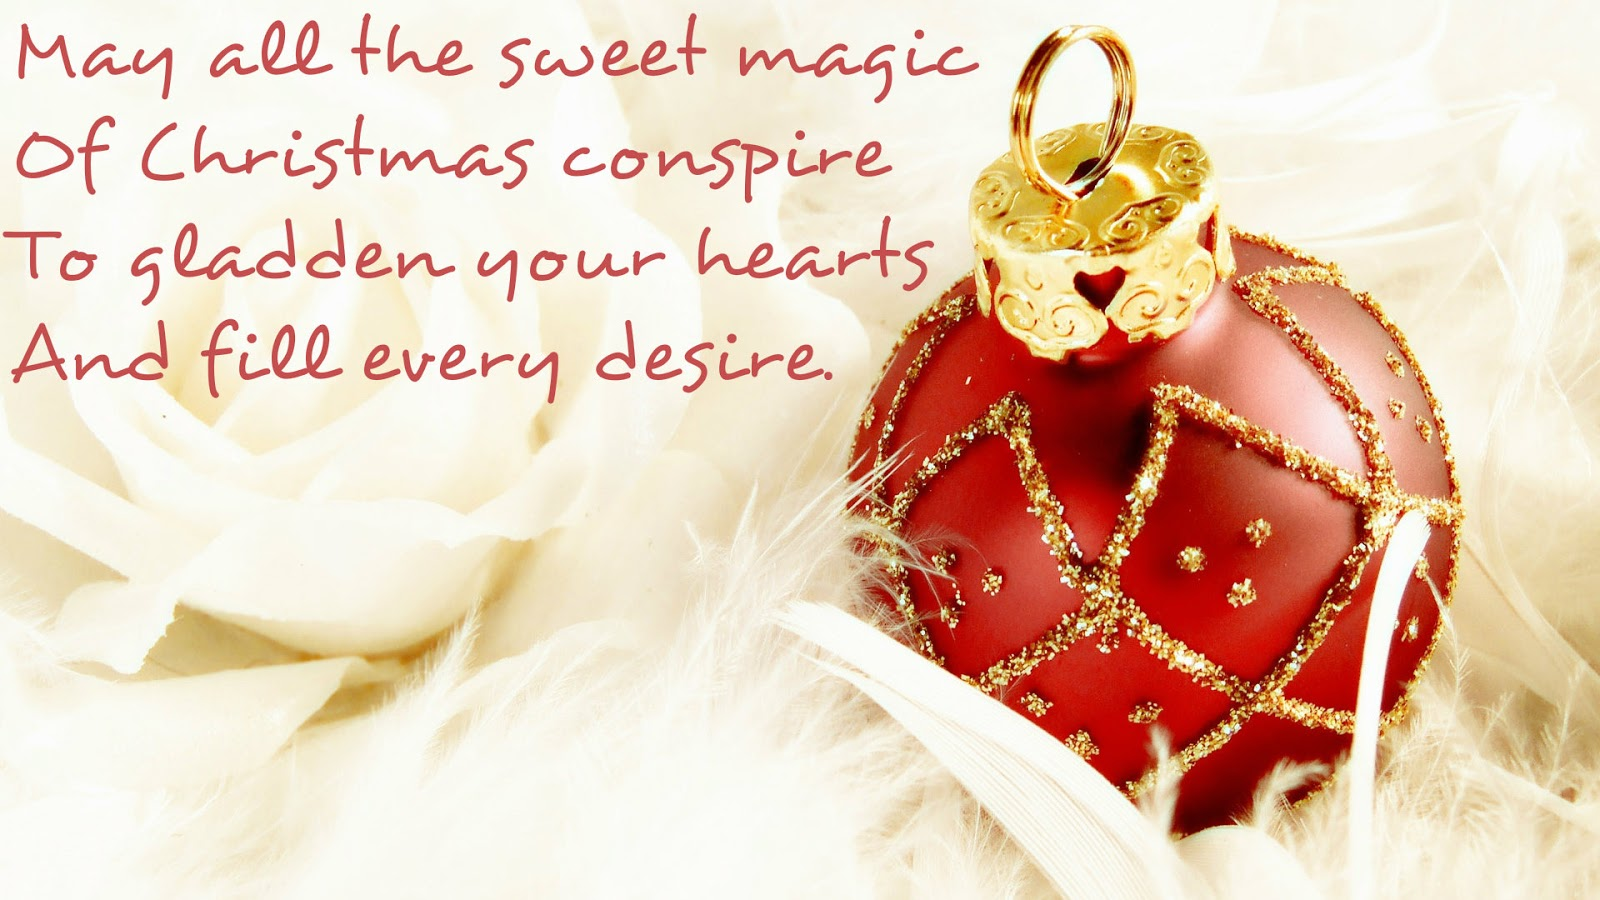 Merry Christmas Quotes Wishes Sayings Songs Christmas Cards